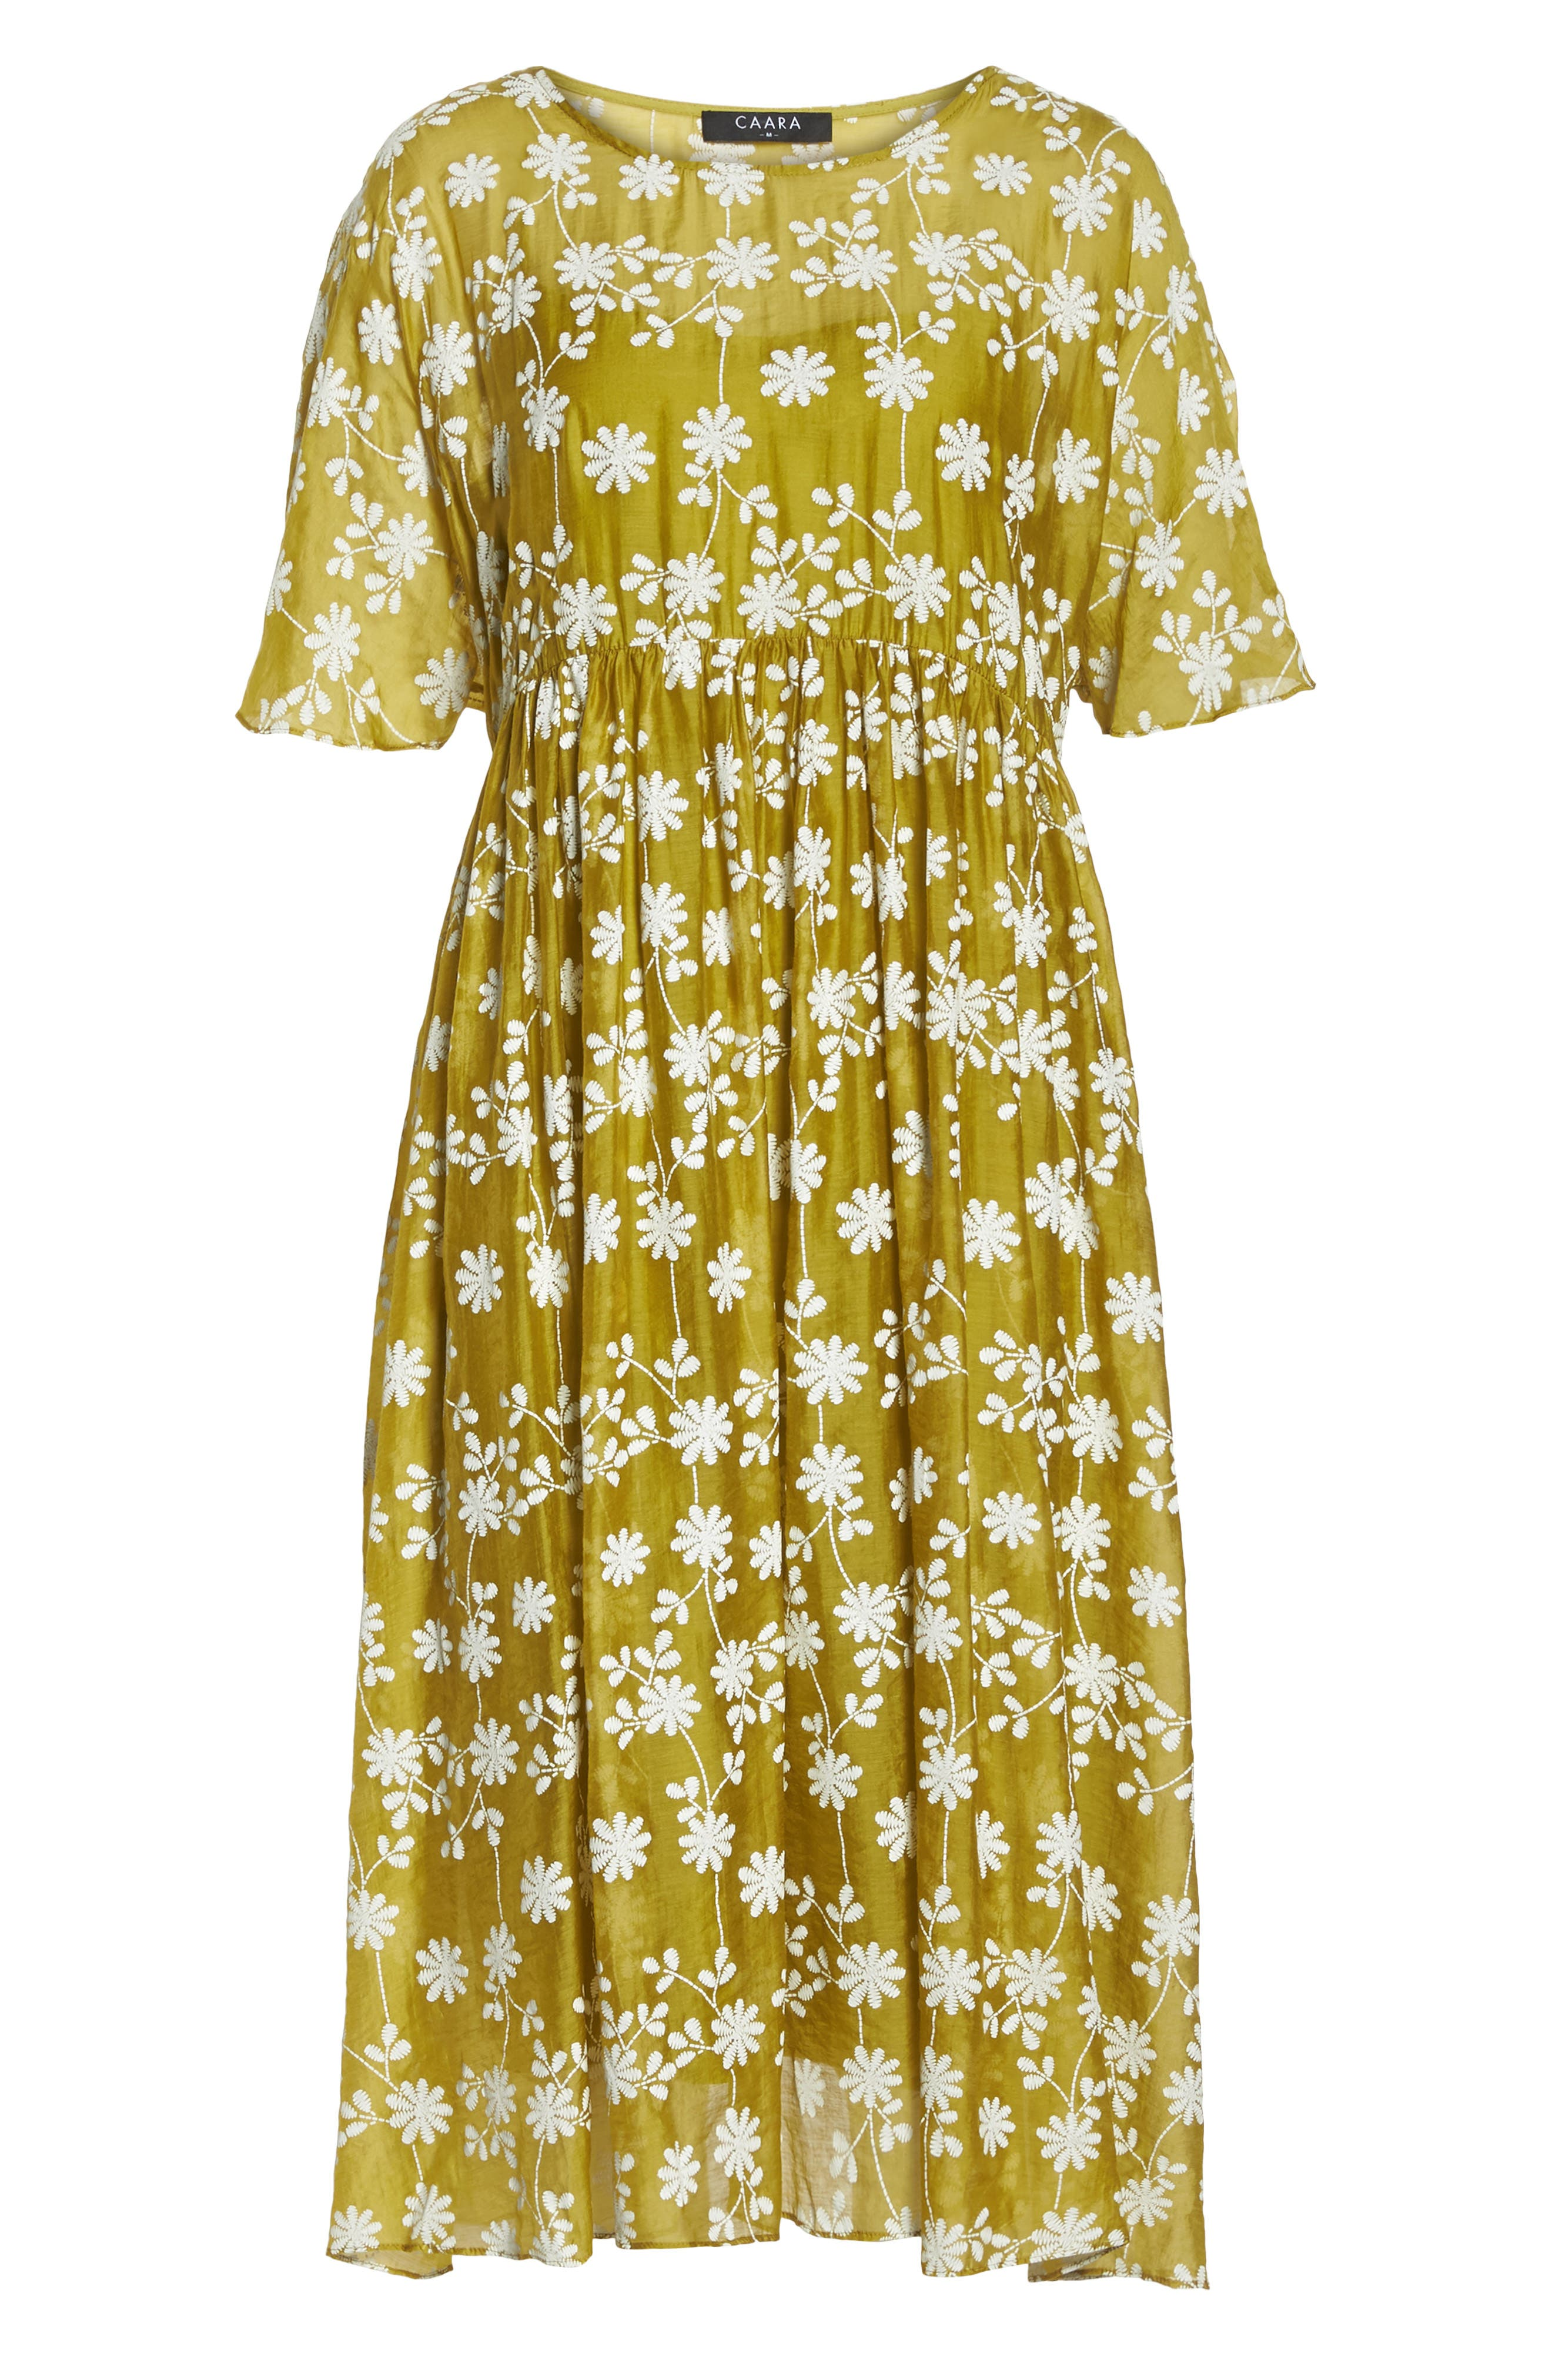 Daisy Picking Floral Dress,                             Alternate thumbnail 7, color,                             700